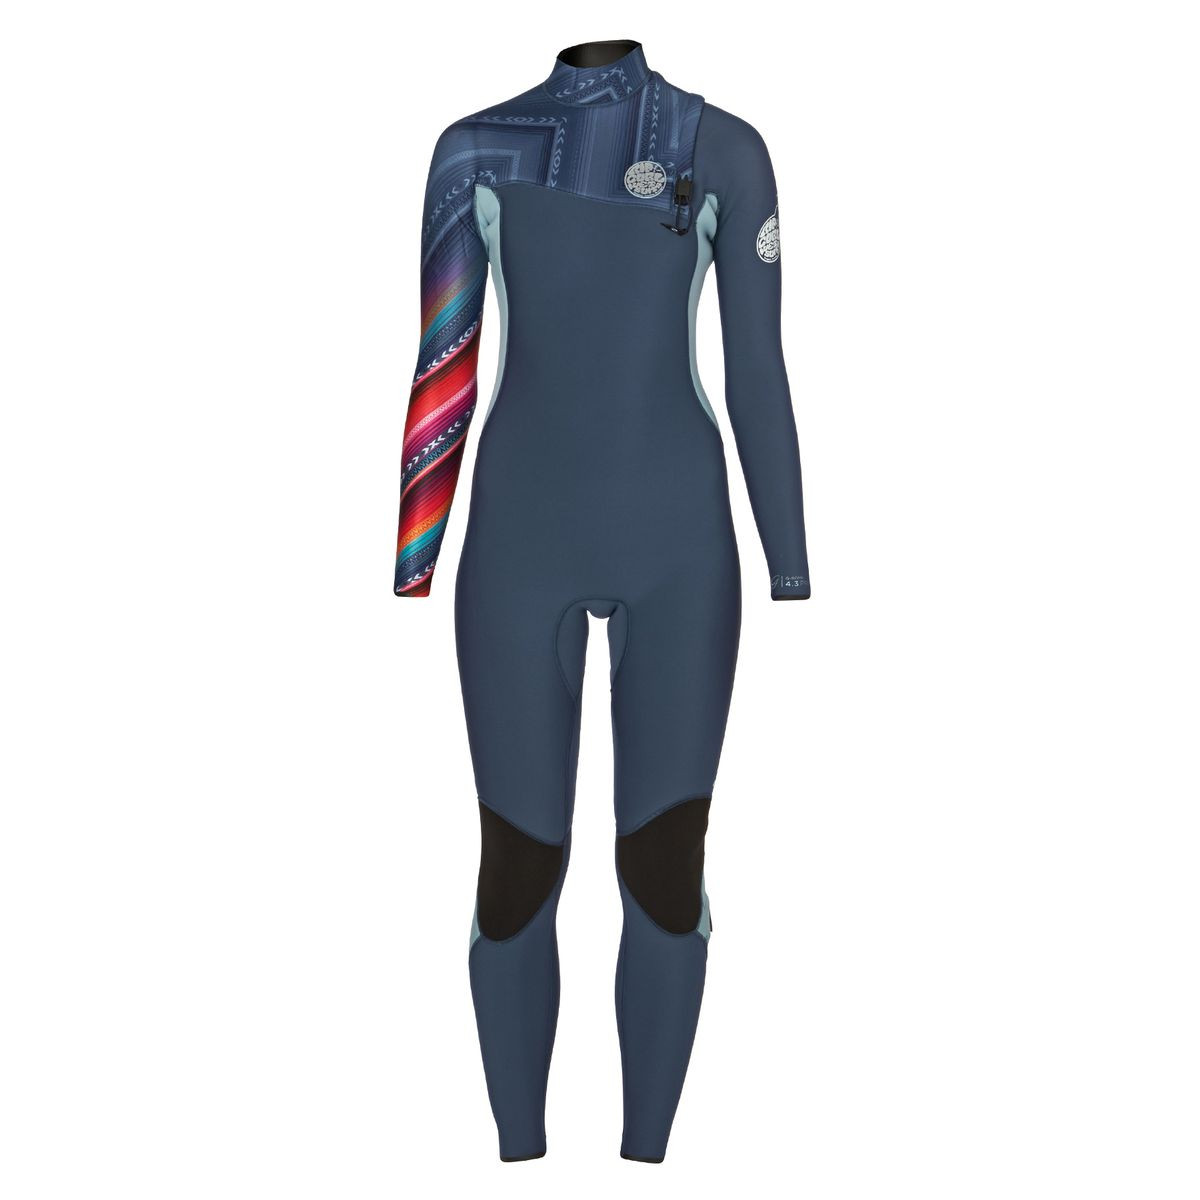 Rip Curl Womens G-Bomb 4/3mm 2017 Zipperless Wetsuit - Blue